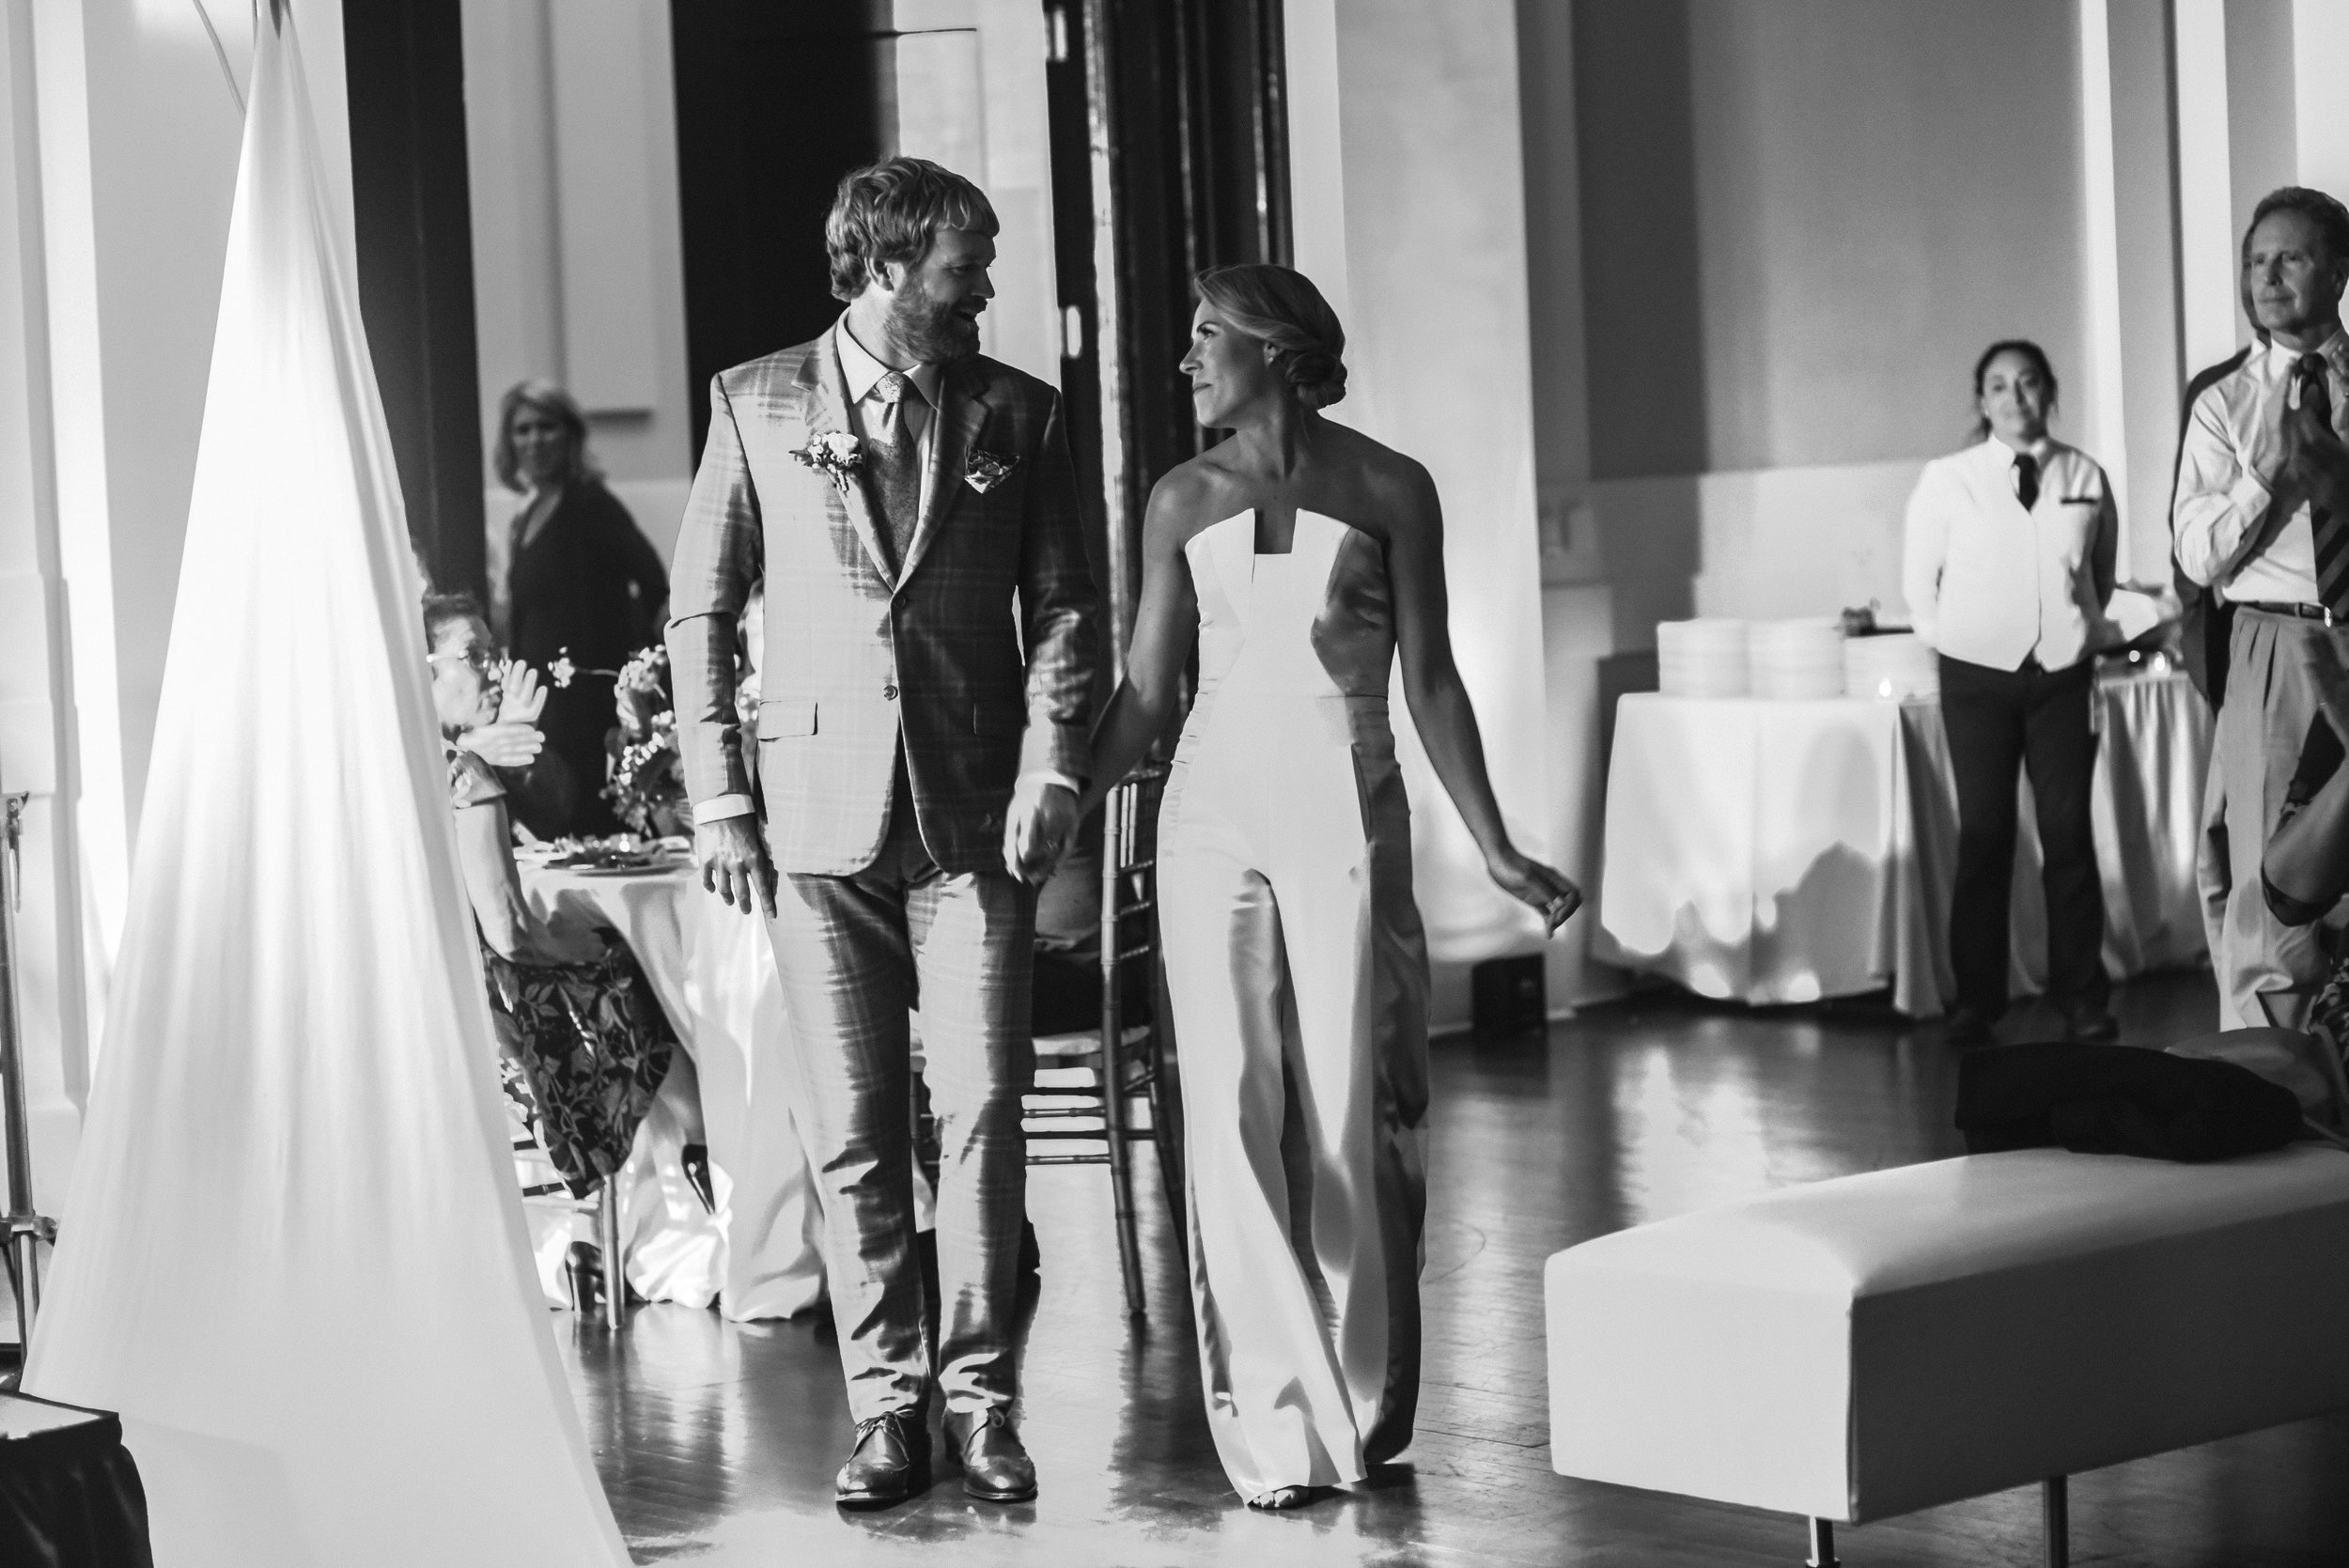 sagamore_pendry_wedding_reception-93.jpg